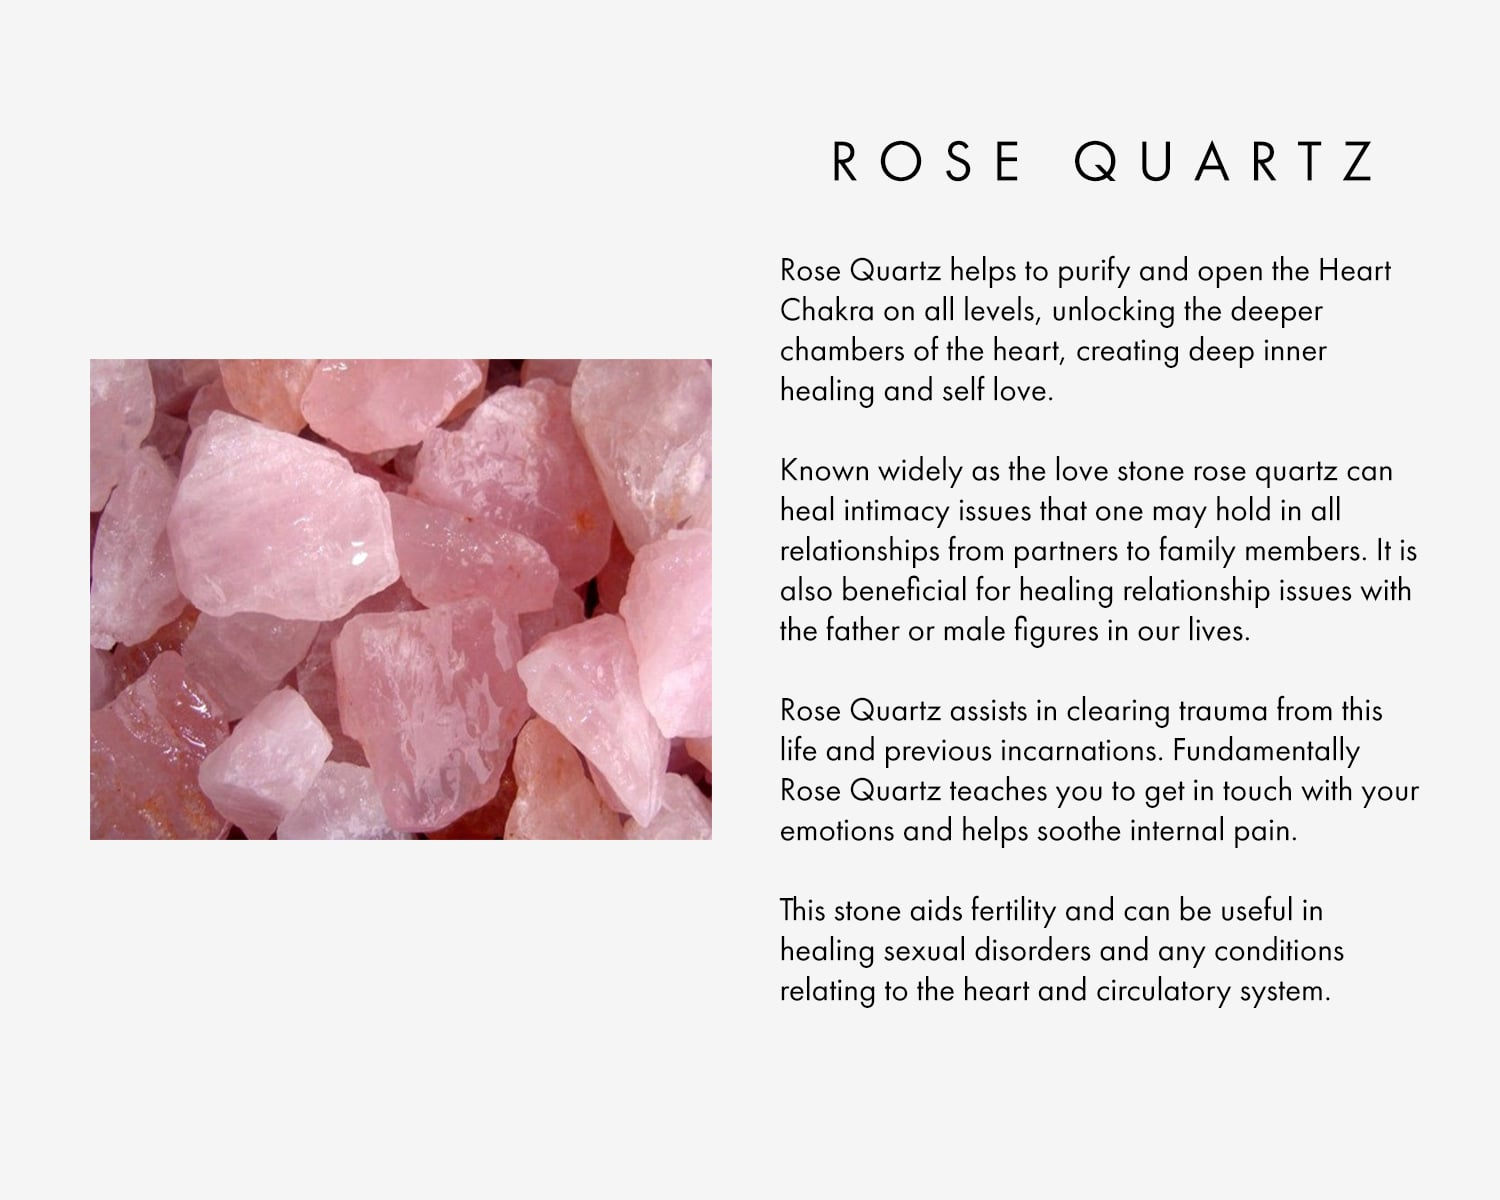 Rose Quartz helps to purify and open the Heart Chakra on all levels, unlocking the deeper chambers of the heart, creating deep inner healing and self love.   Known widely as the love stone rose quartz can heal intimacy issues that one may hold in all relationships from partners to family members. It is also beneficial for healing relationship issues with the father or male figures in our lives.    Rose Quartz assists in clearing trauma from this life and previous incarnations. Fundamentally Rose Quartz teaches you to get in touch with your emotions and helps soothe internal pain.   This stone aids fertility and can be useful in healing sexual disorders and any conditions relating to the heart and circulatory system.